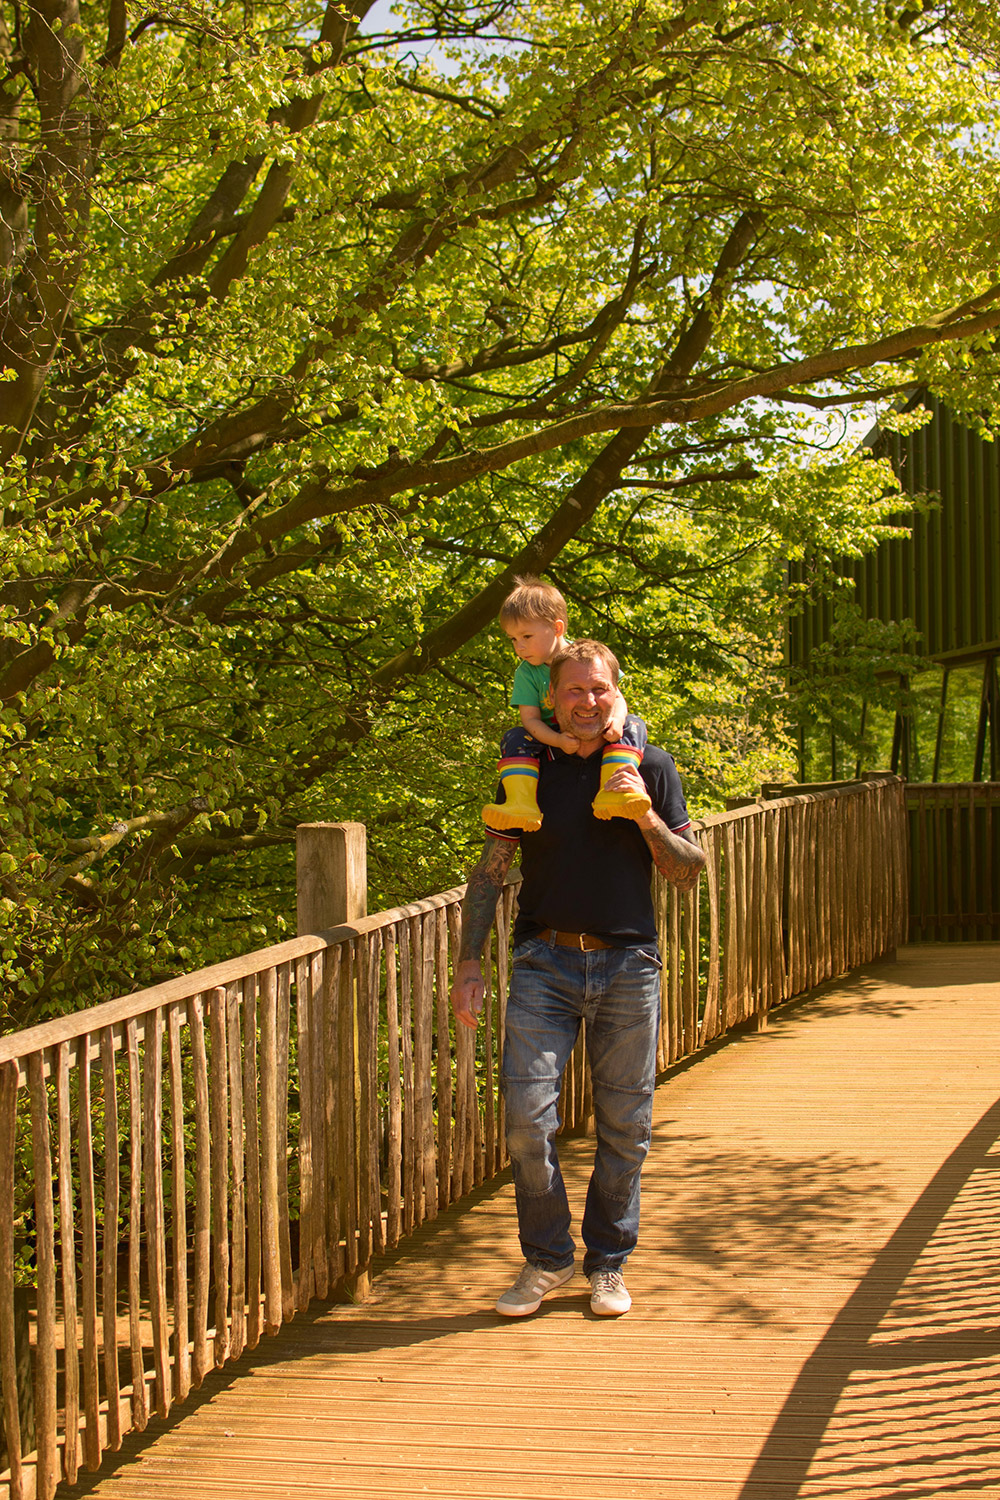 Grandad by the giraffe enclosure with 3 year old grandson on shoulders at Cotswold Wildlife Park with family